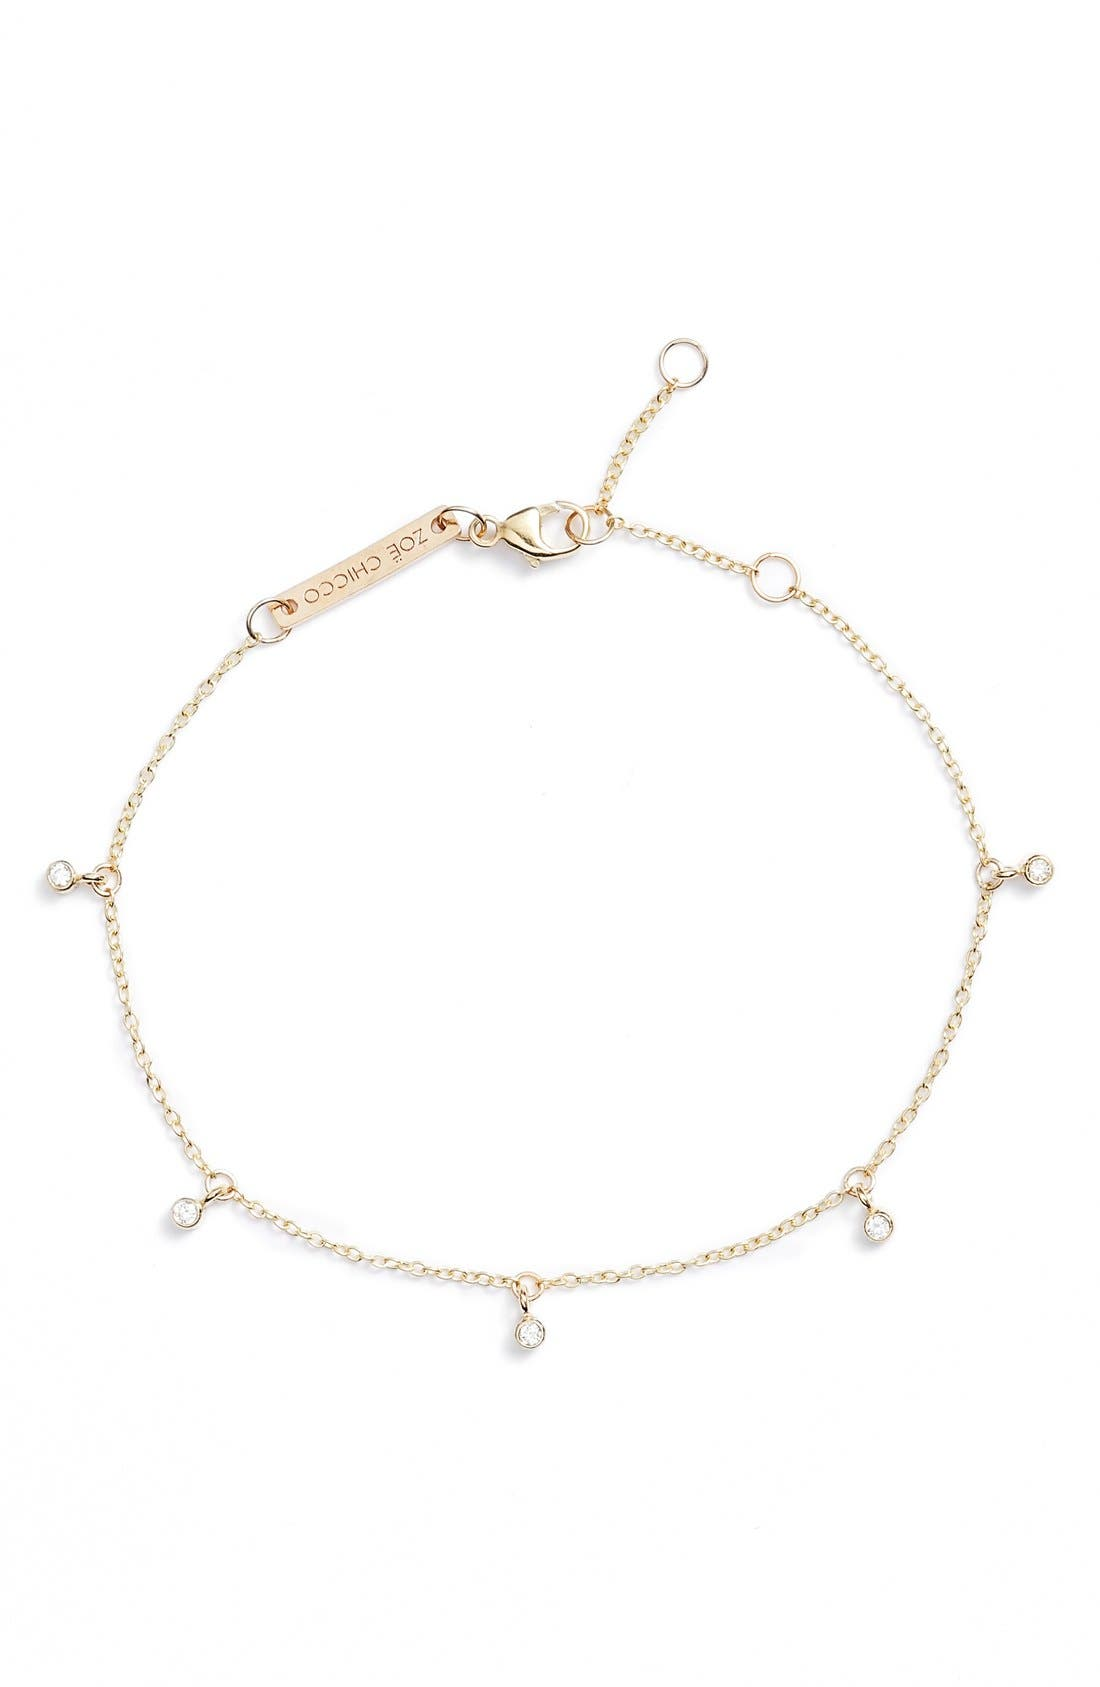 Dangling Diamond Bracelet,                         Main,                         color, Yellow Gold